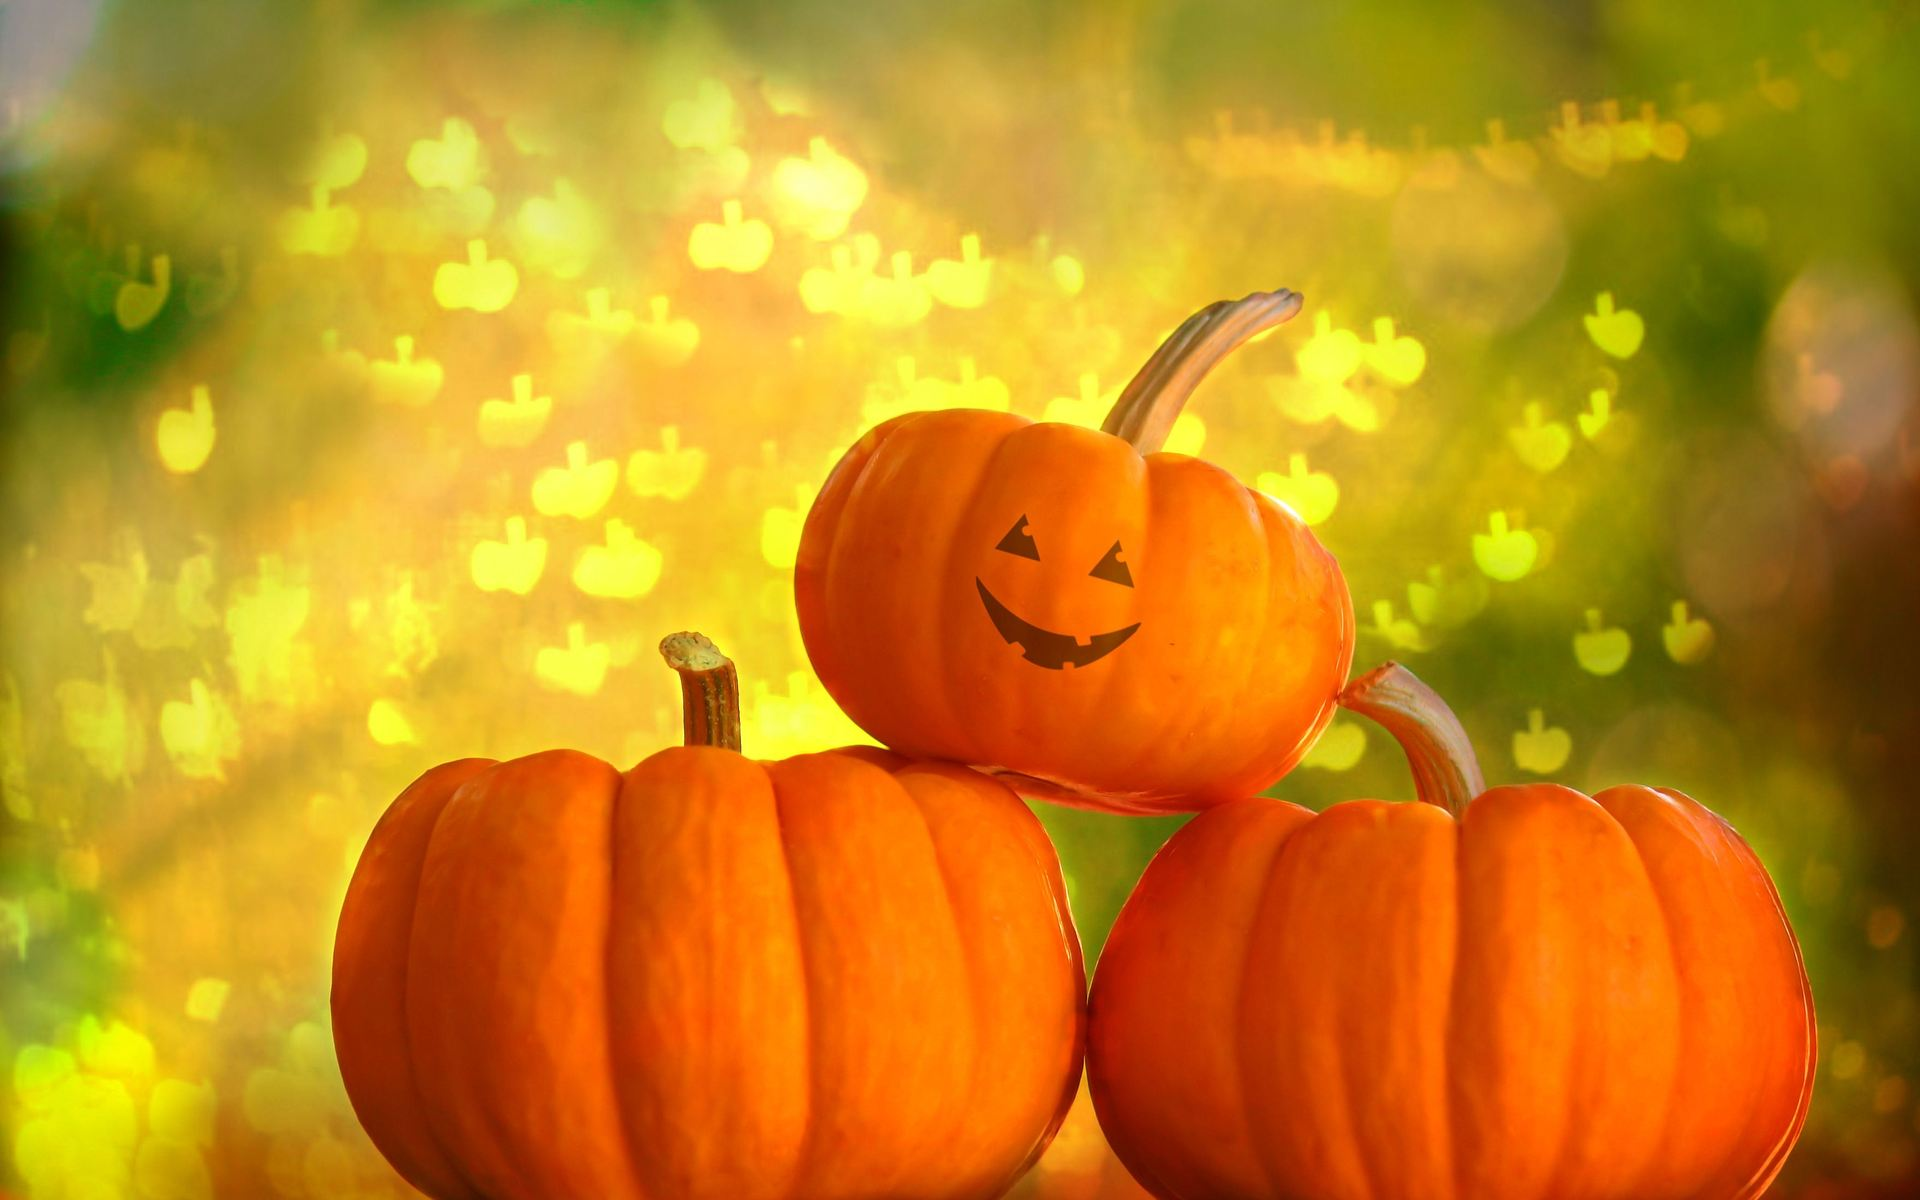 Great Wallpaper Macbook Halloween - cool-pumpkin-wallpaper-1  You Should Have_425330.jpg